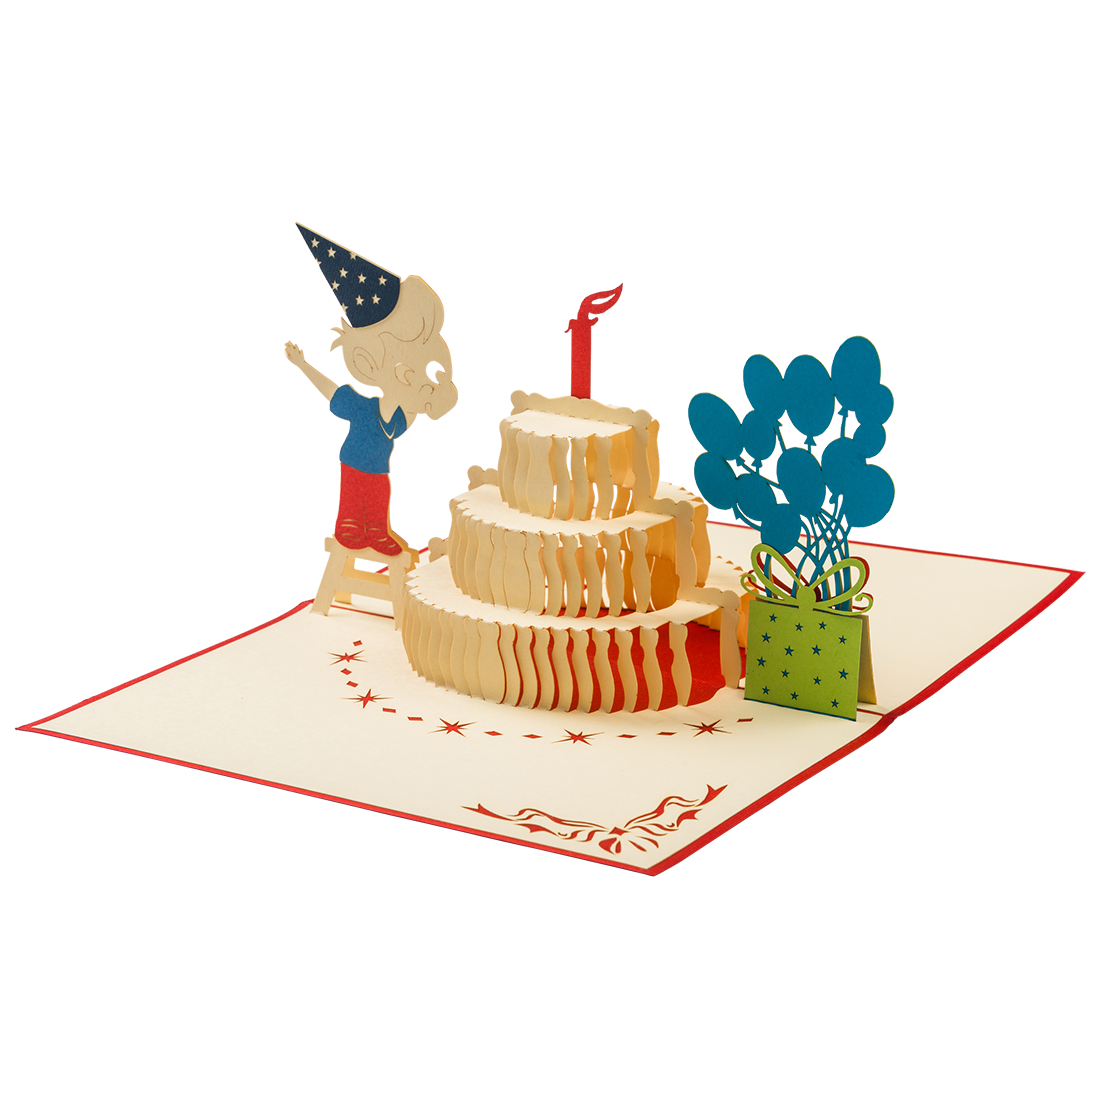 Png images of blonde blowing out birthday candles